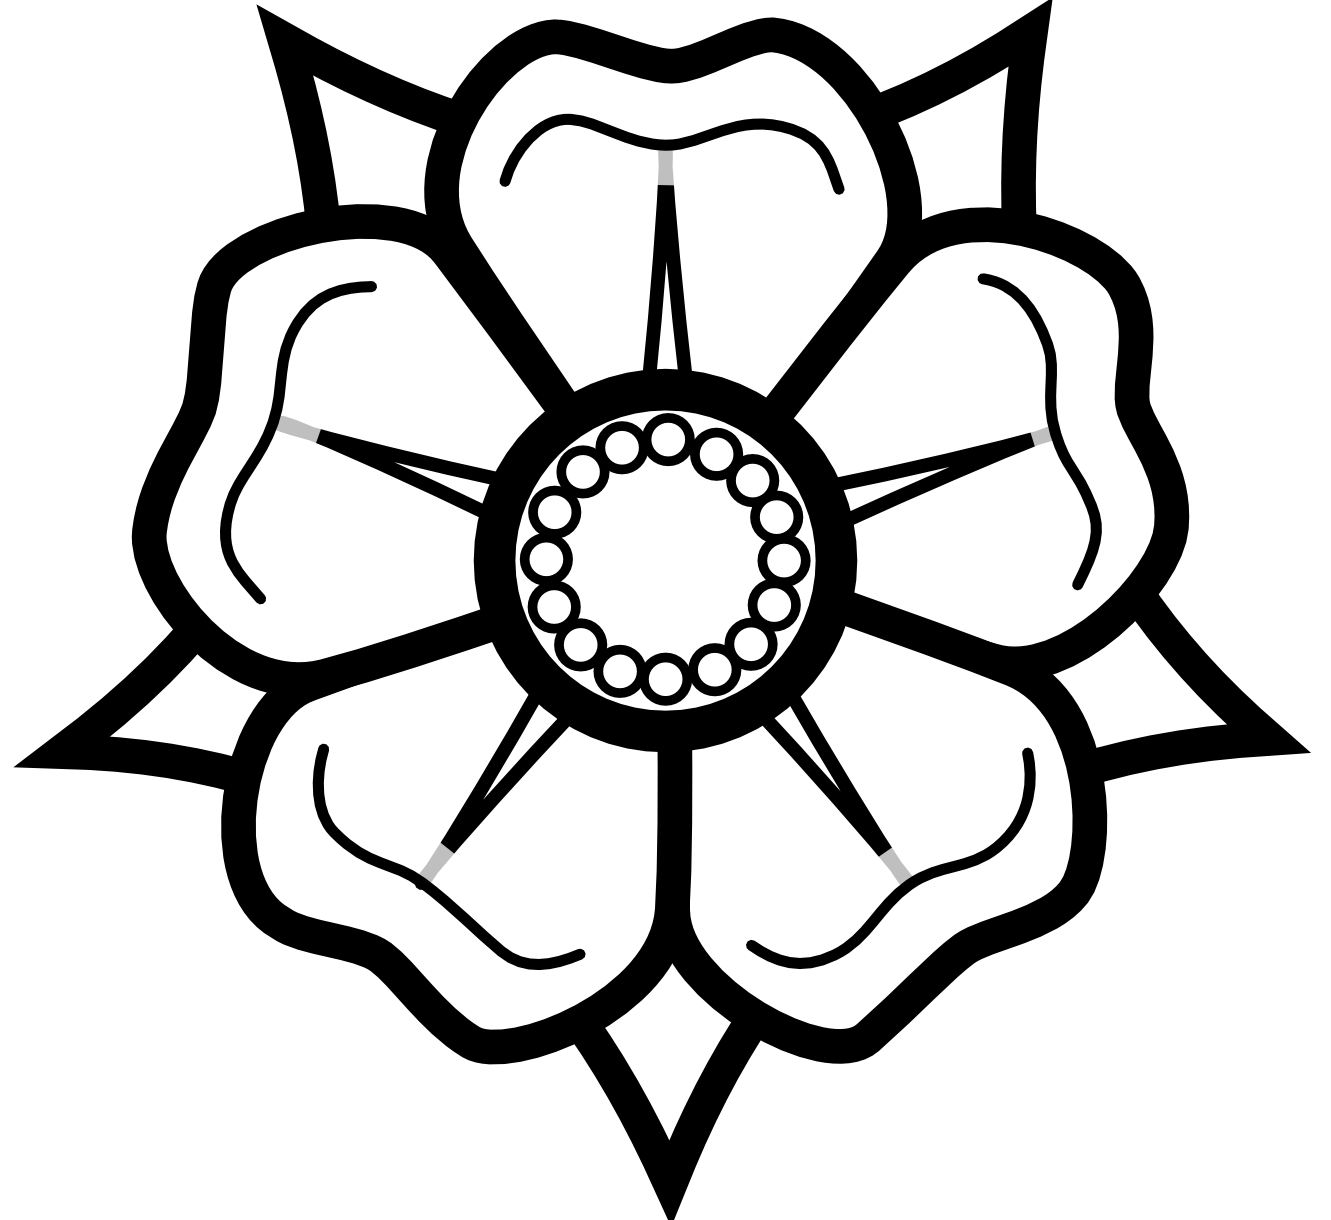 Black And White Flower Drawings - ClipArt Best